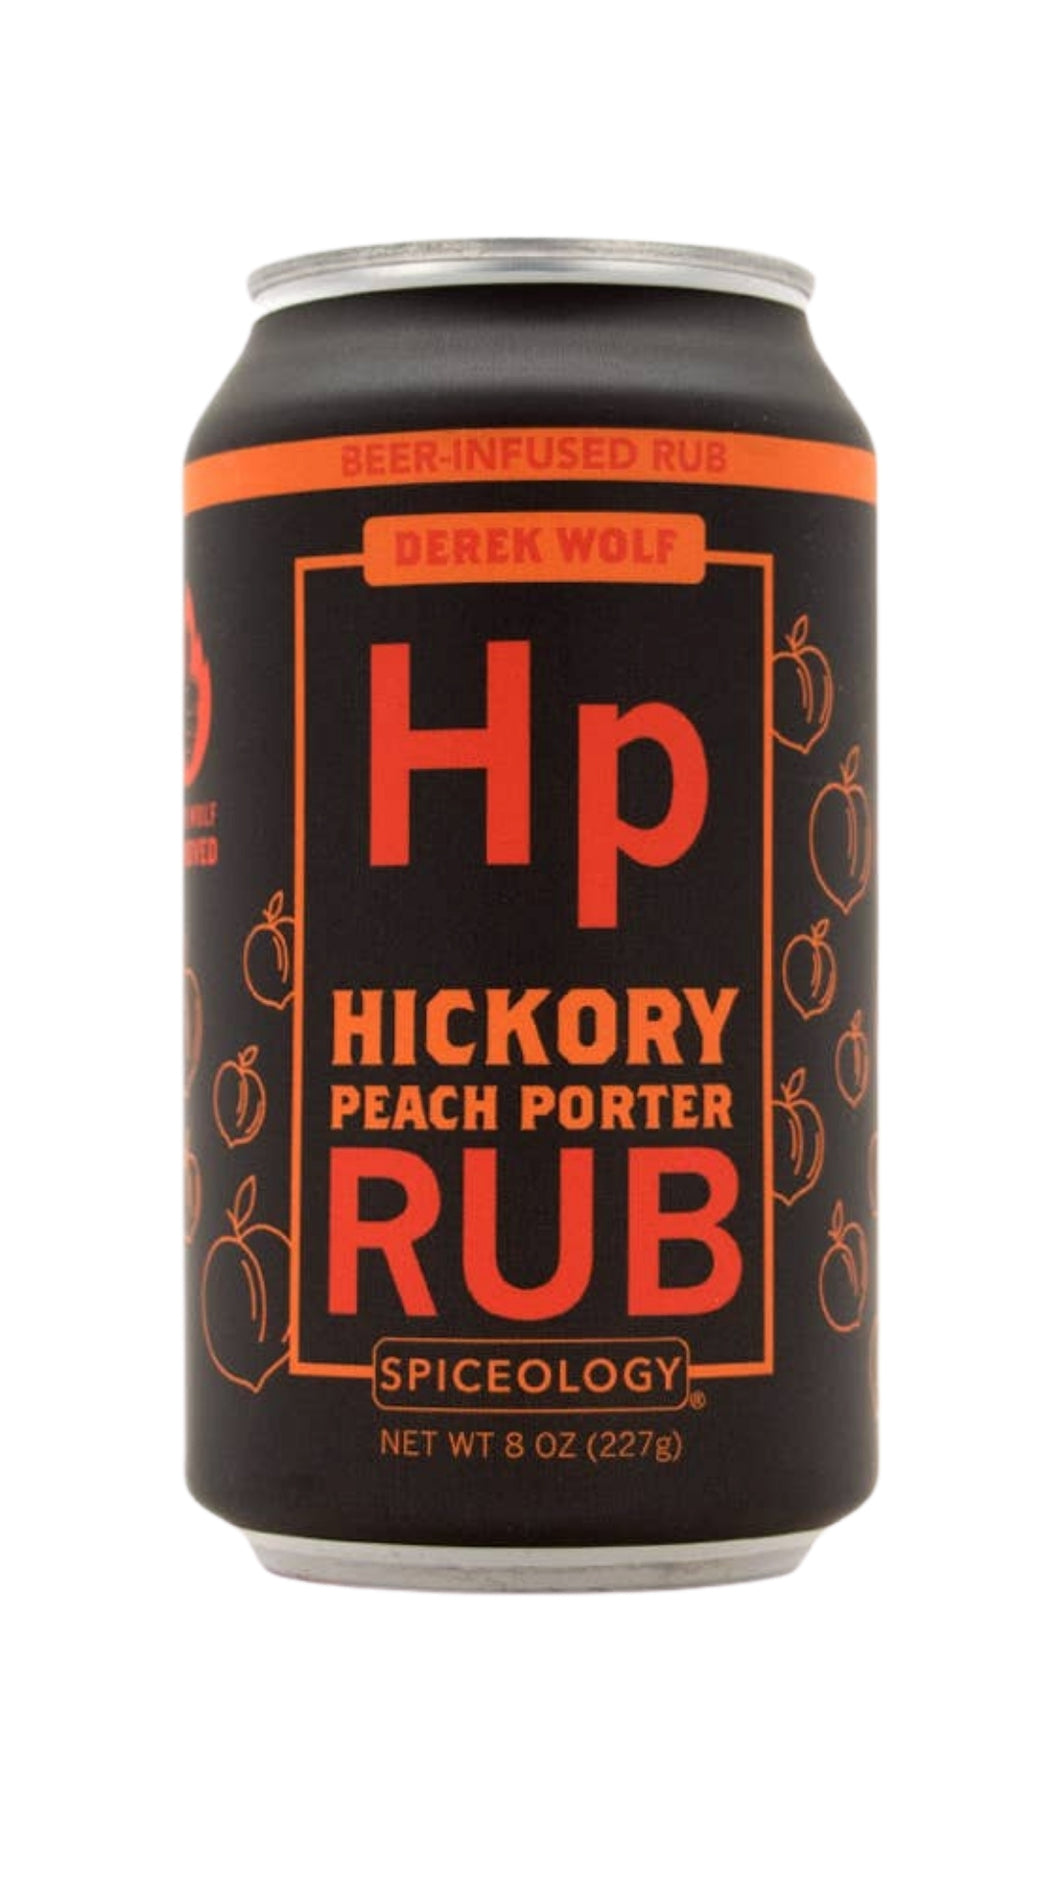 Hickory Peach Porter Rub